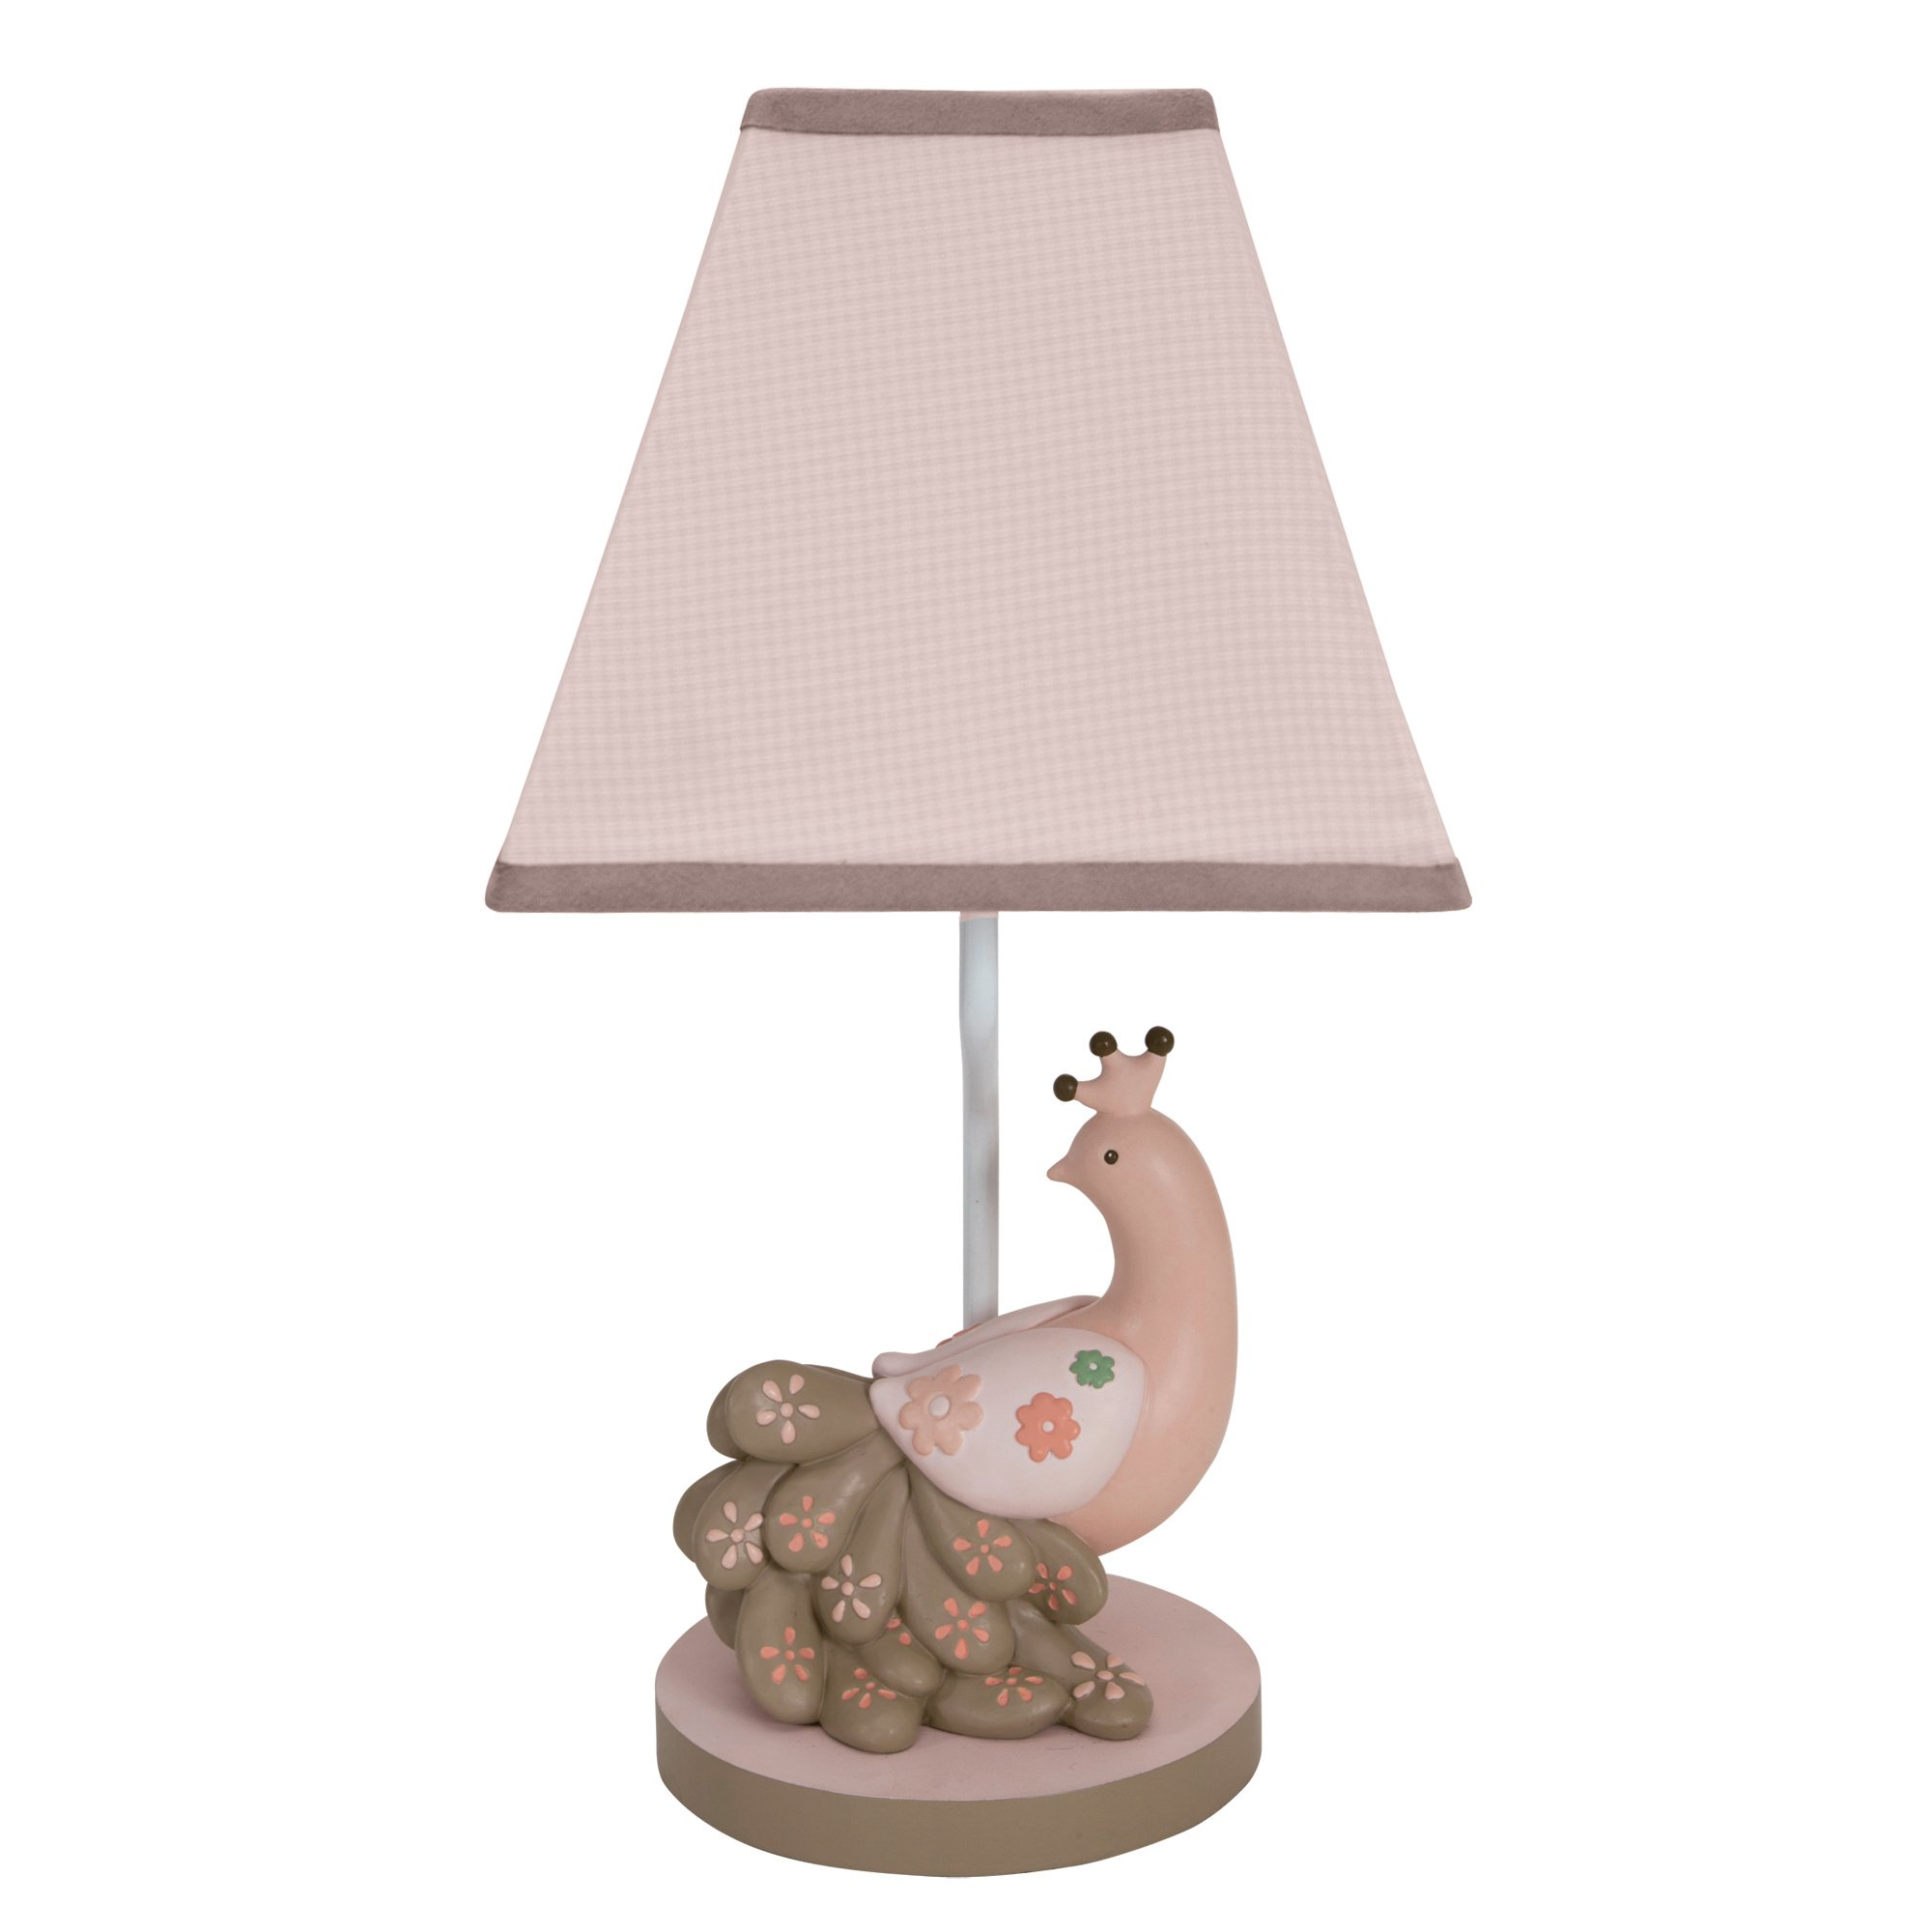 Lambs & Ivy Lamp, Fawn (Discontinued by Manufacturer)